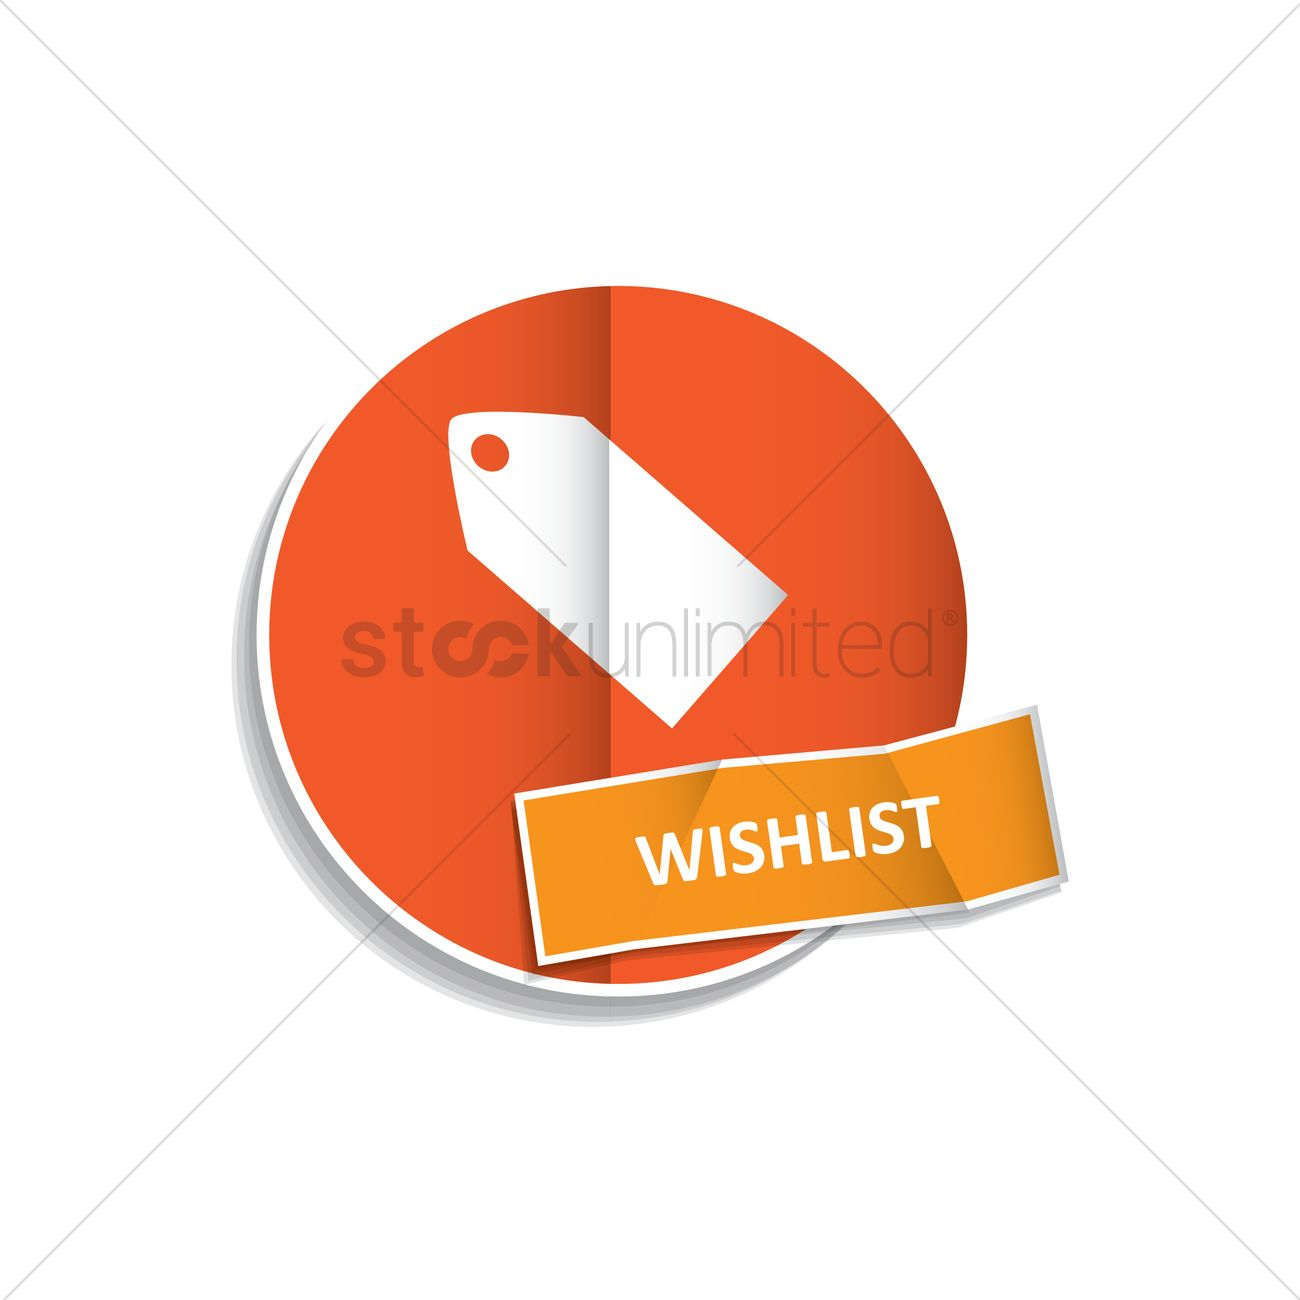 390a17846f Free Wishlist button Vector Image - 1325768 | StockUnlimited